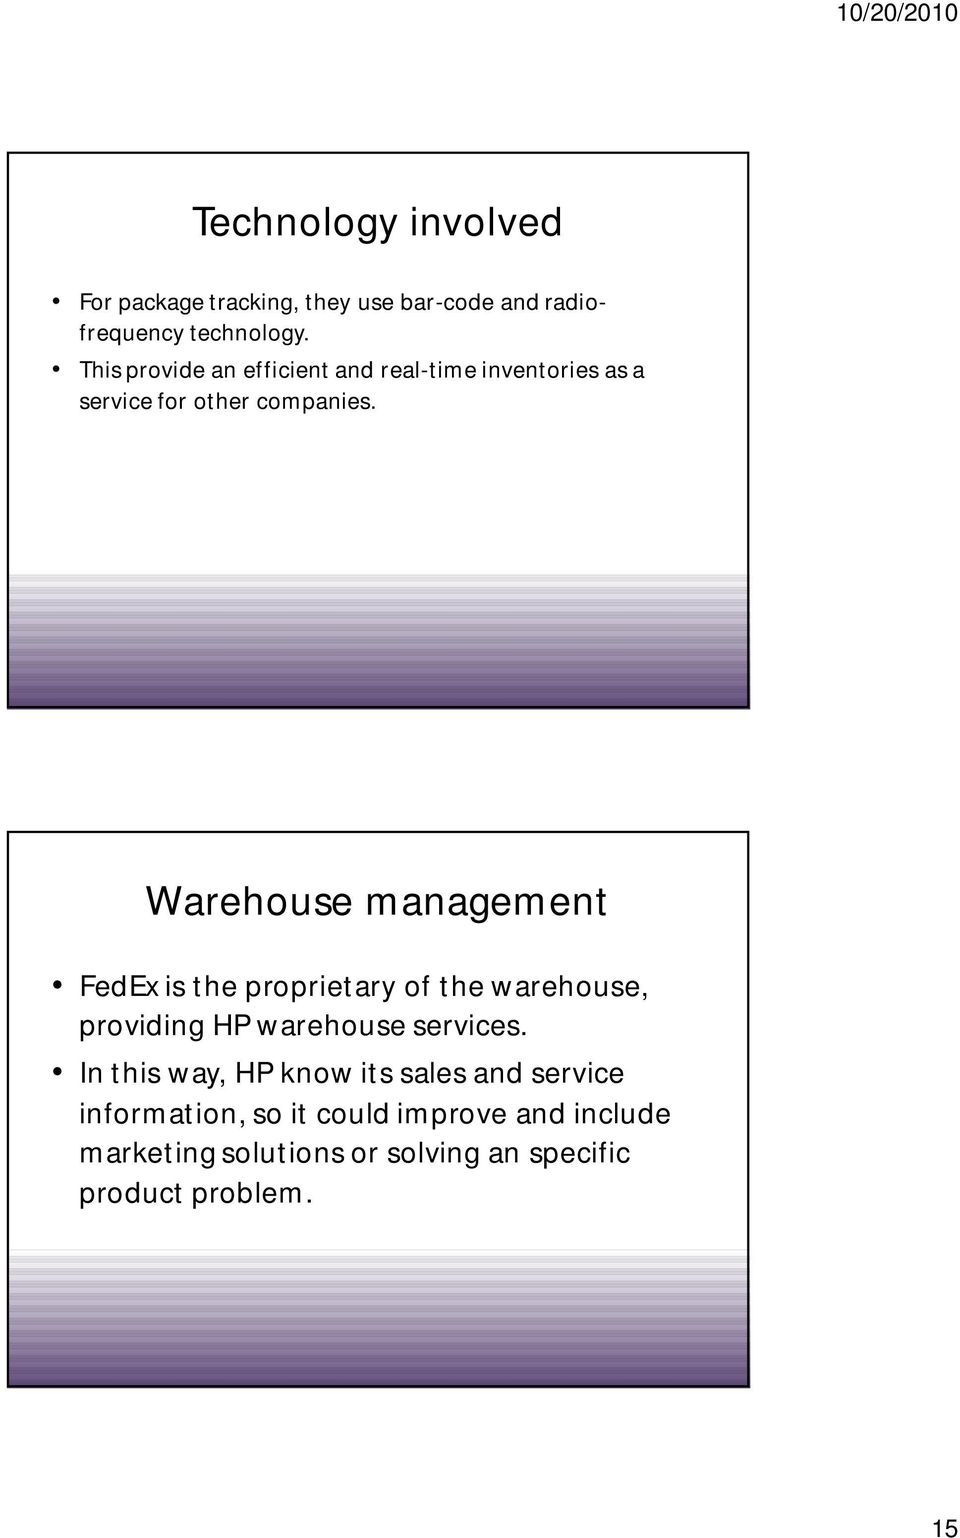 Warehouse management FedEx is the proprietary of the warehouse, providing HP warehouse services.